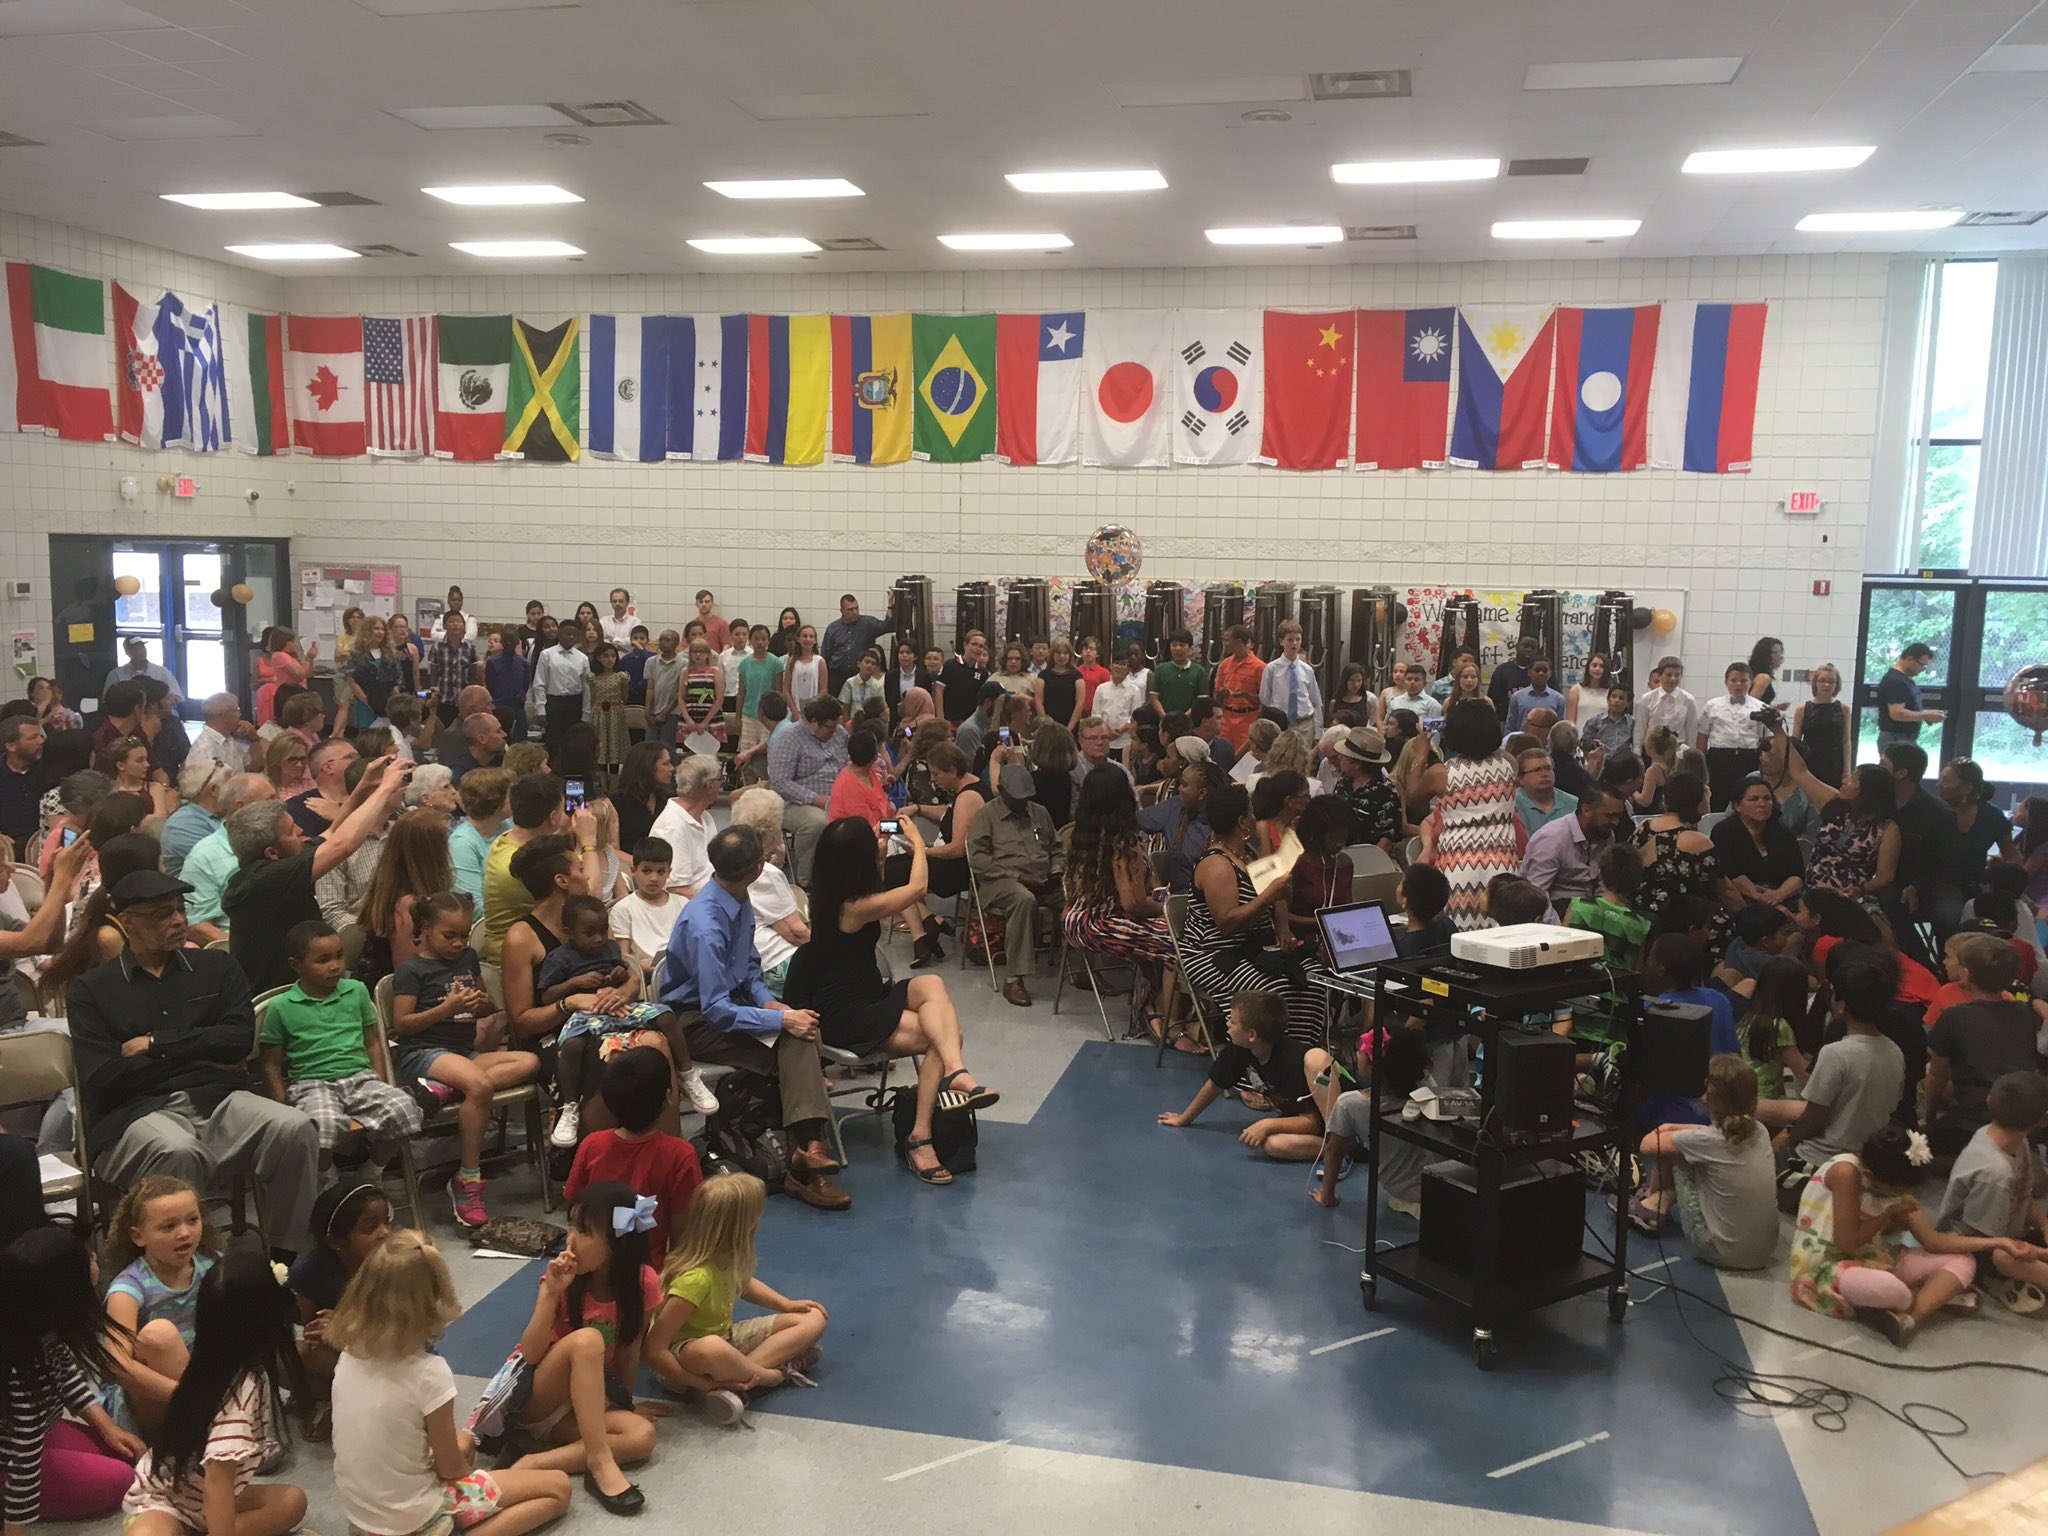 Congratulations to our fifth grade graduates, their families, and thank you to our amazing speakers! #A2Logan #A2gether @A2schools https://t.co/K4Ddt8fKxb